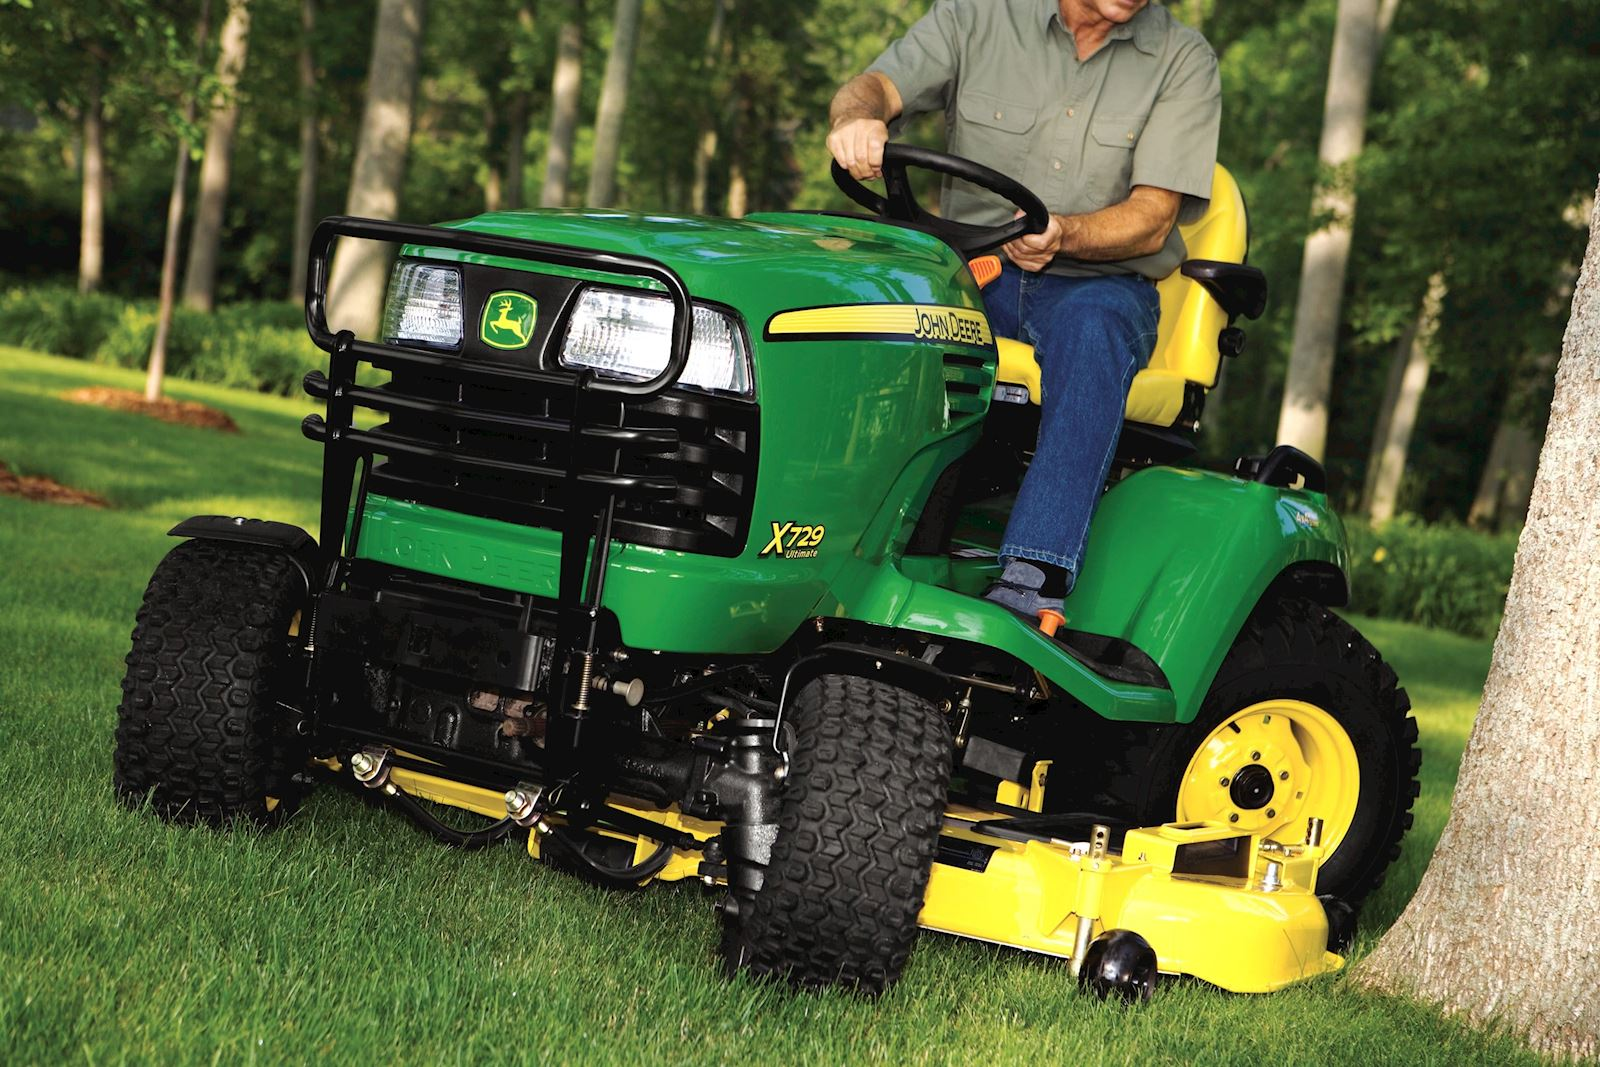 Riding Lawn Mowers and Equipment